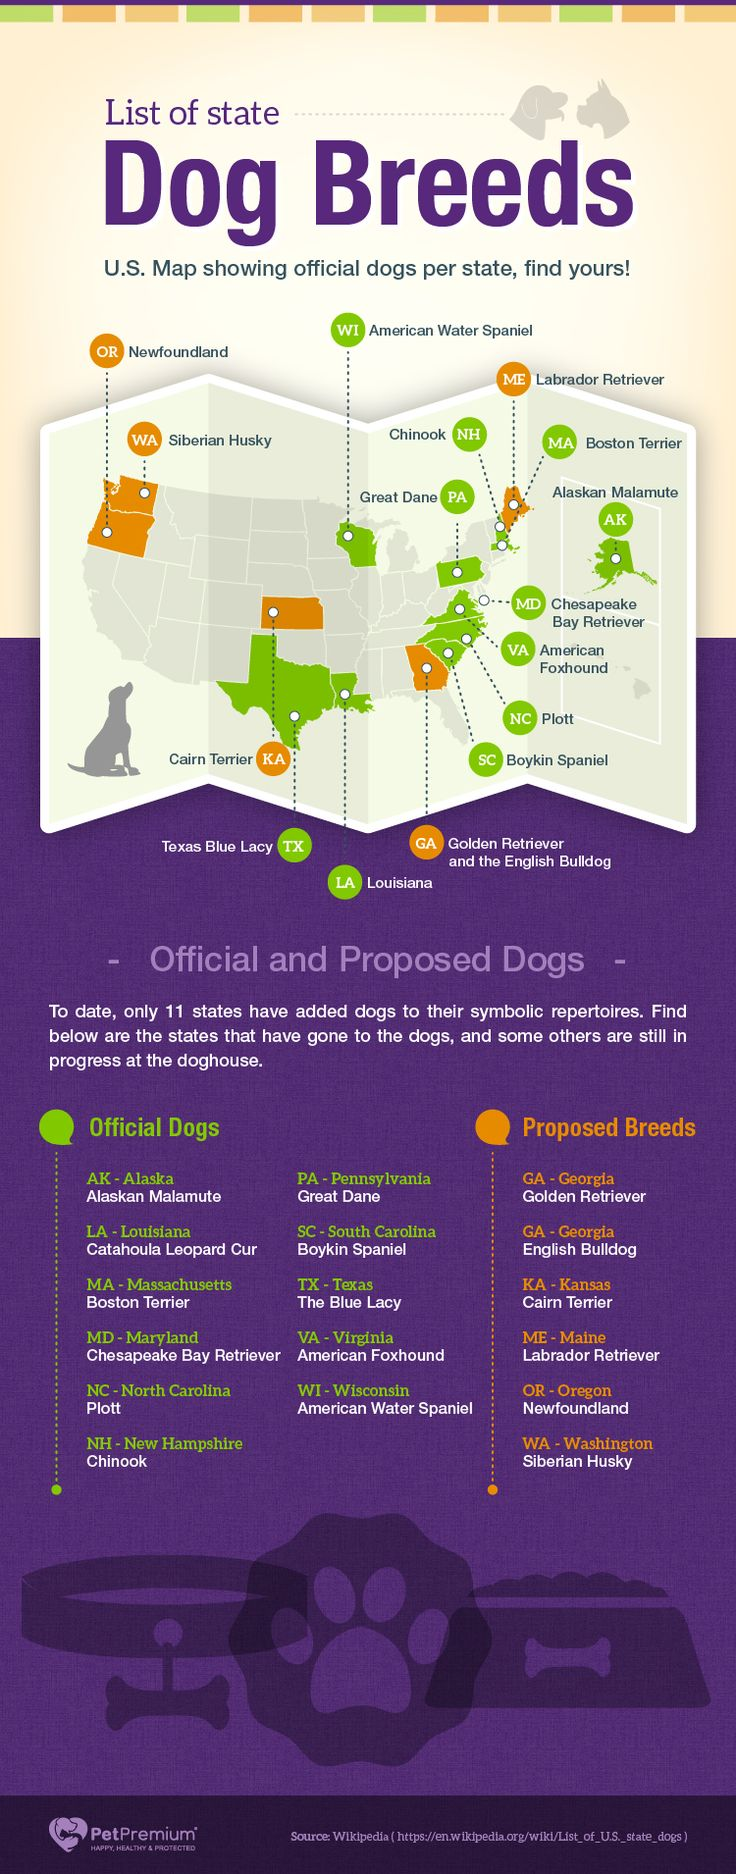 Displaying images for vicious dog breeds list - List Of State Dog Breeds Petpremium Inc Infographic